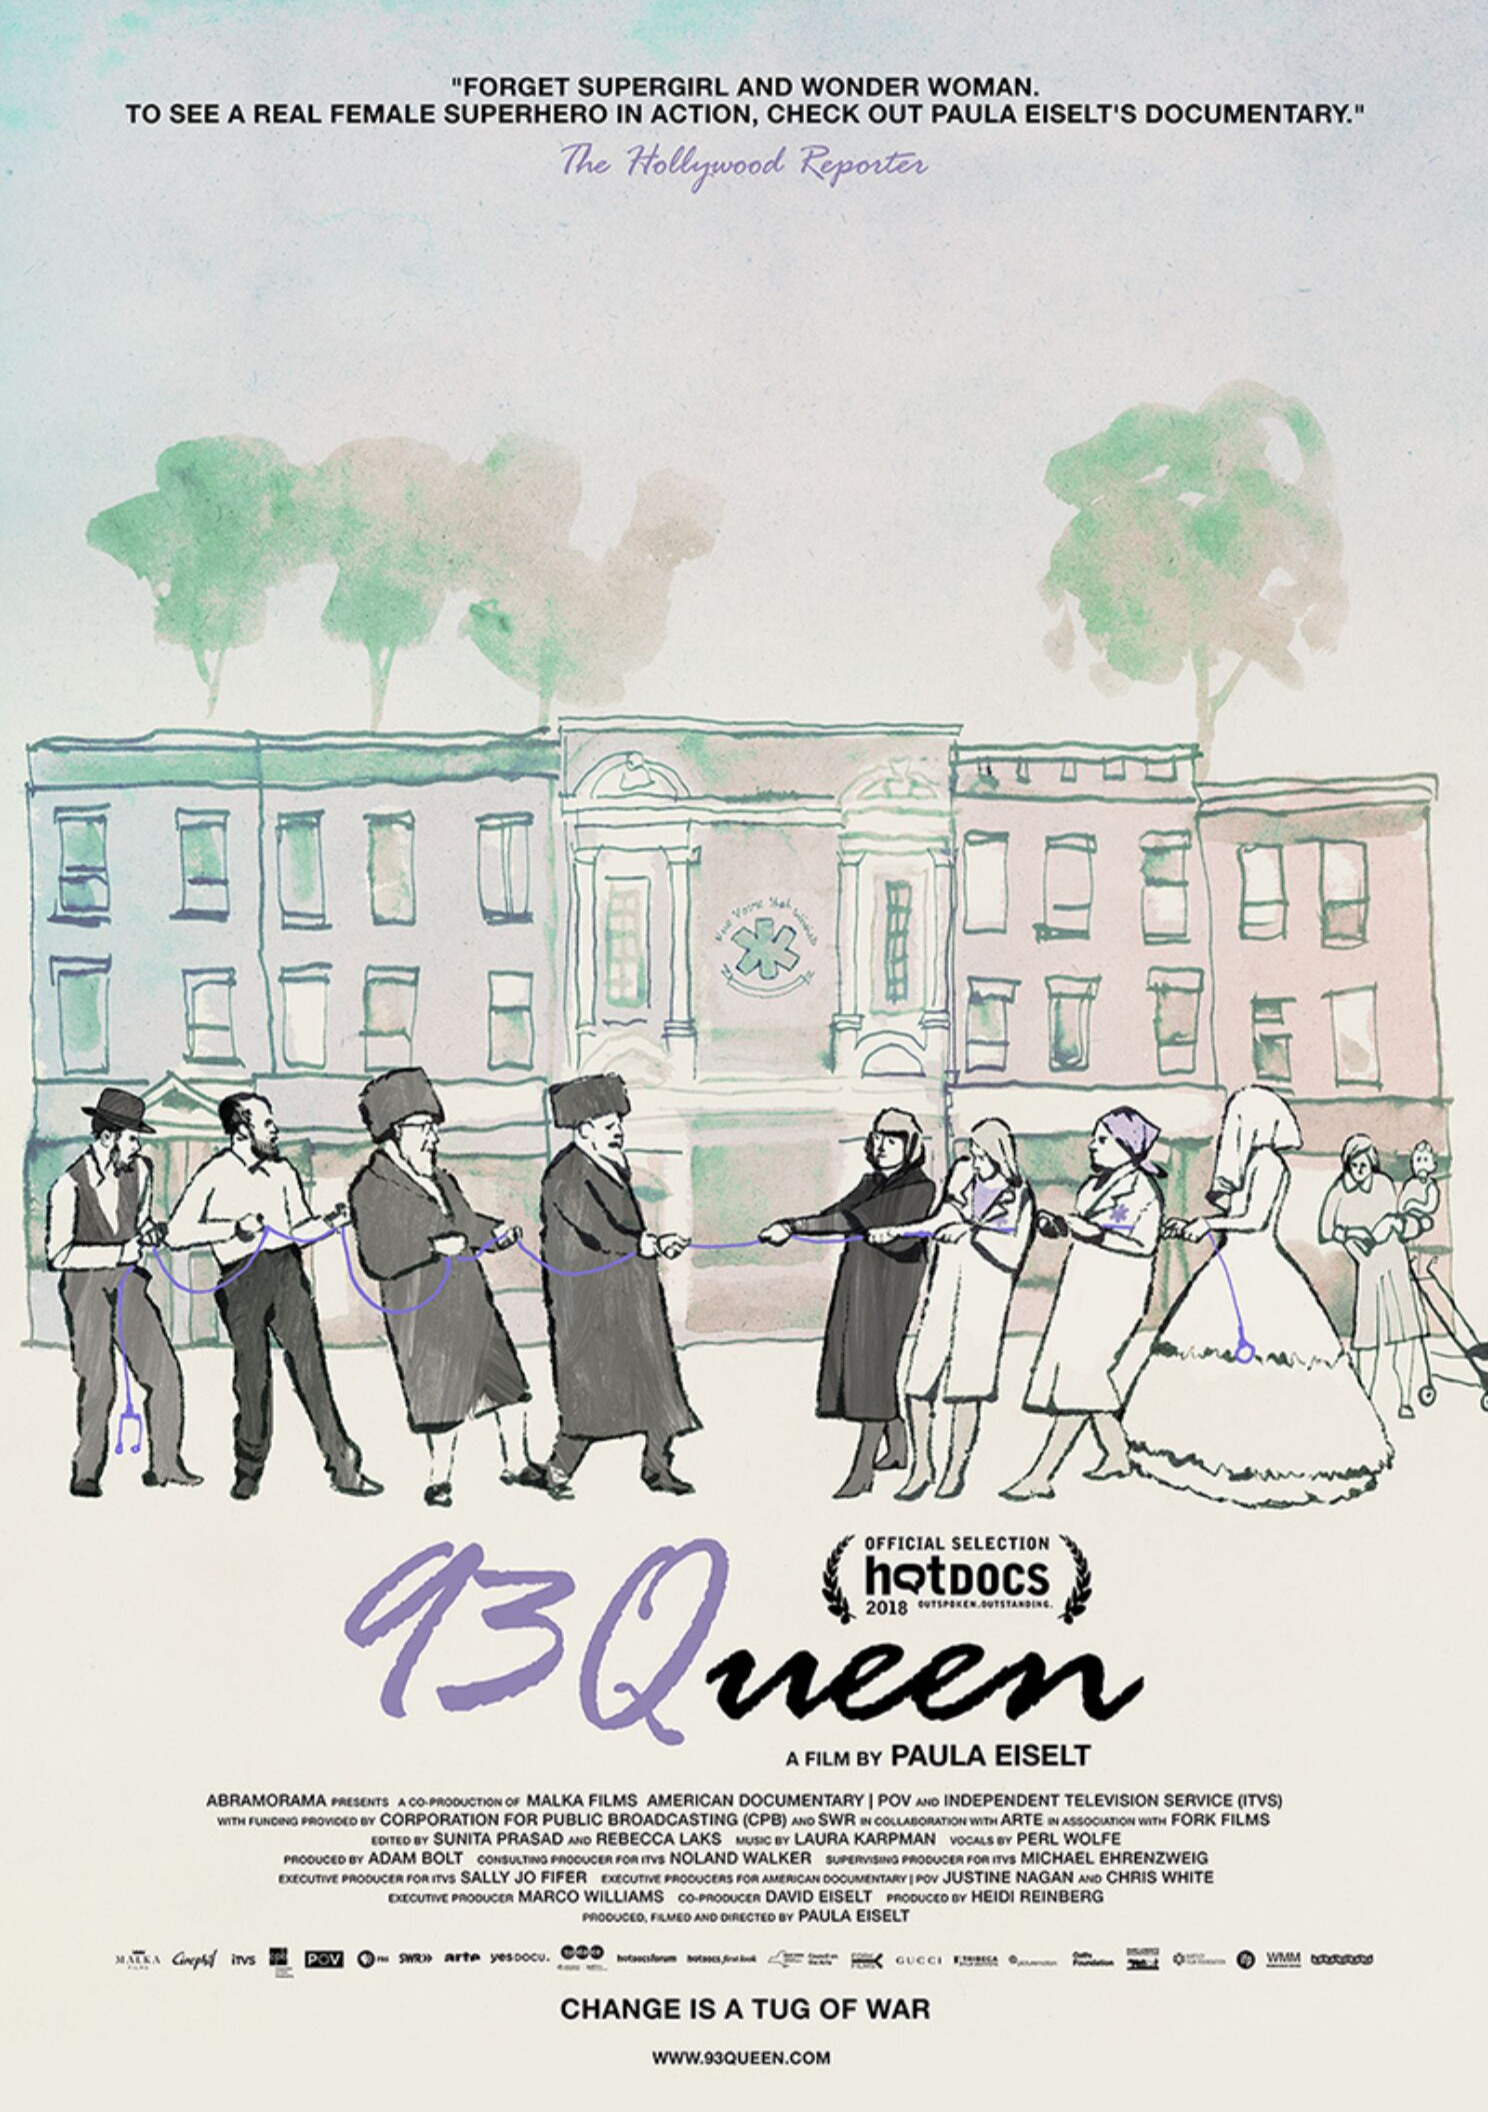 93queen - OVERVIEW: In a Hasidic enclave in Brooklyn, there are seemingly endless services tailored for the community—stores in Yiddish, school buses and even a dedicated EMS. Yet the corps is made up entirely of men, and one group of women wants to change that. On a mission to start the city's first all-female volunteer EMS corps, these women are set on shattering the glass ceiling in the unlikeliest of communities.FILMMAKER: A film by Paula Eiselt, also known for Rachels Rettungsdienst: Ultraorthodoxe Jüdinnen im Einsatz; P.O.V.'s Bronx Princess; and Priscilla.Official Selection: HotDocsPRESS: The New York Times, Los Angeles Times, IndieWire, The Hollywood Reporter, The Guardian